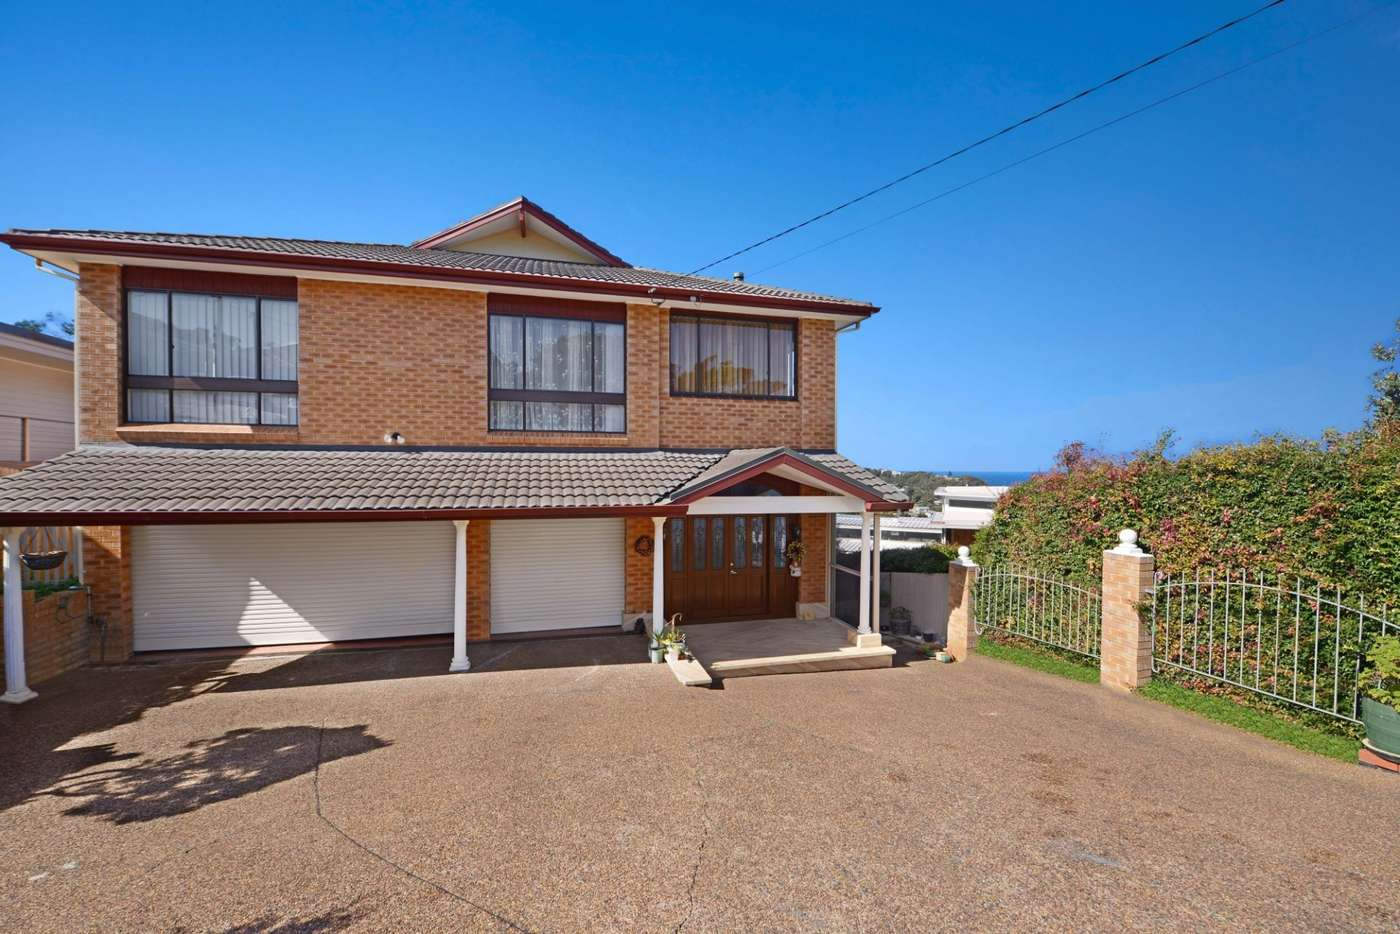 Main view of Homely house listing, 7 Munyana St, Copacabana, NSW 2251